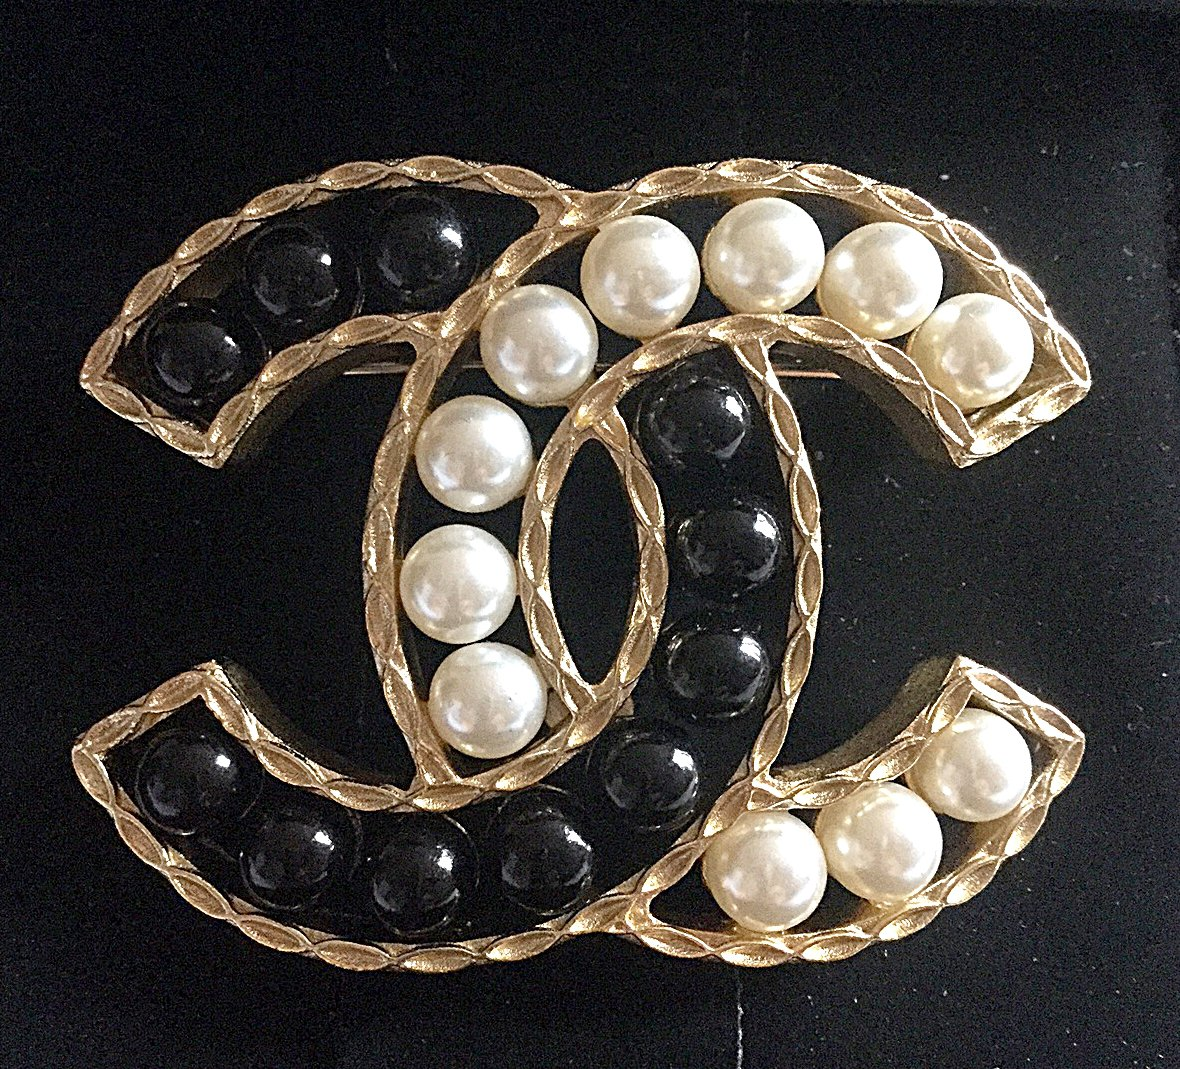 CHANEL PEARL Black & Cream Resin Bead Fashion Brooch Pin GOLD CC Authentic NIB